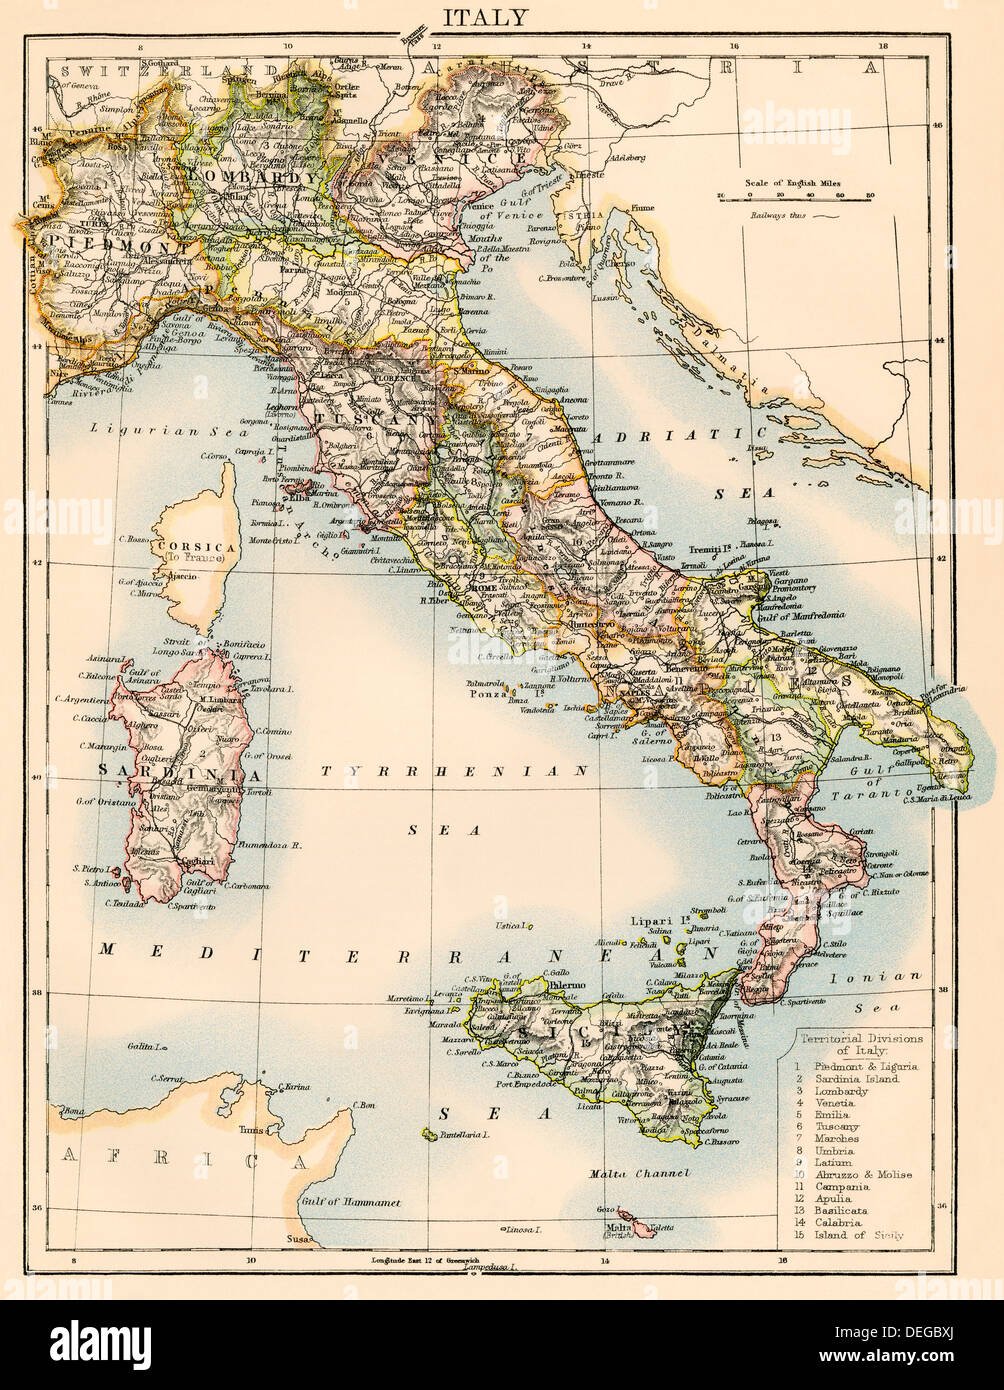 Map of Italy, 1870s. Color lithograph - Stock Image